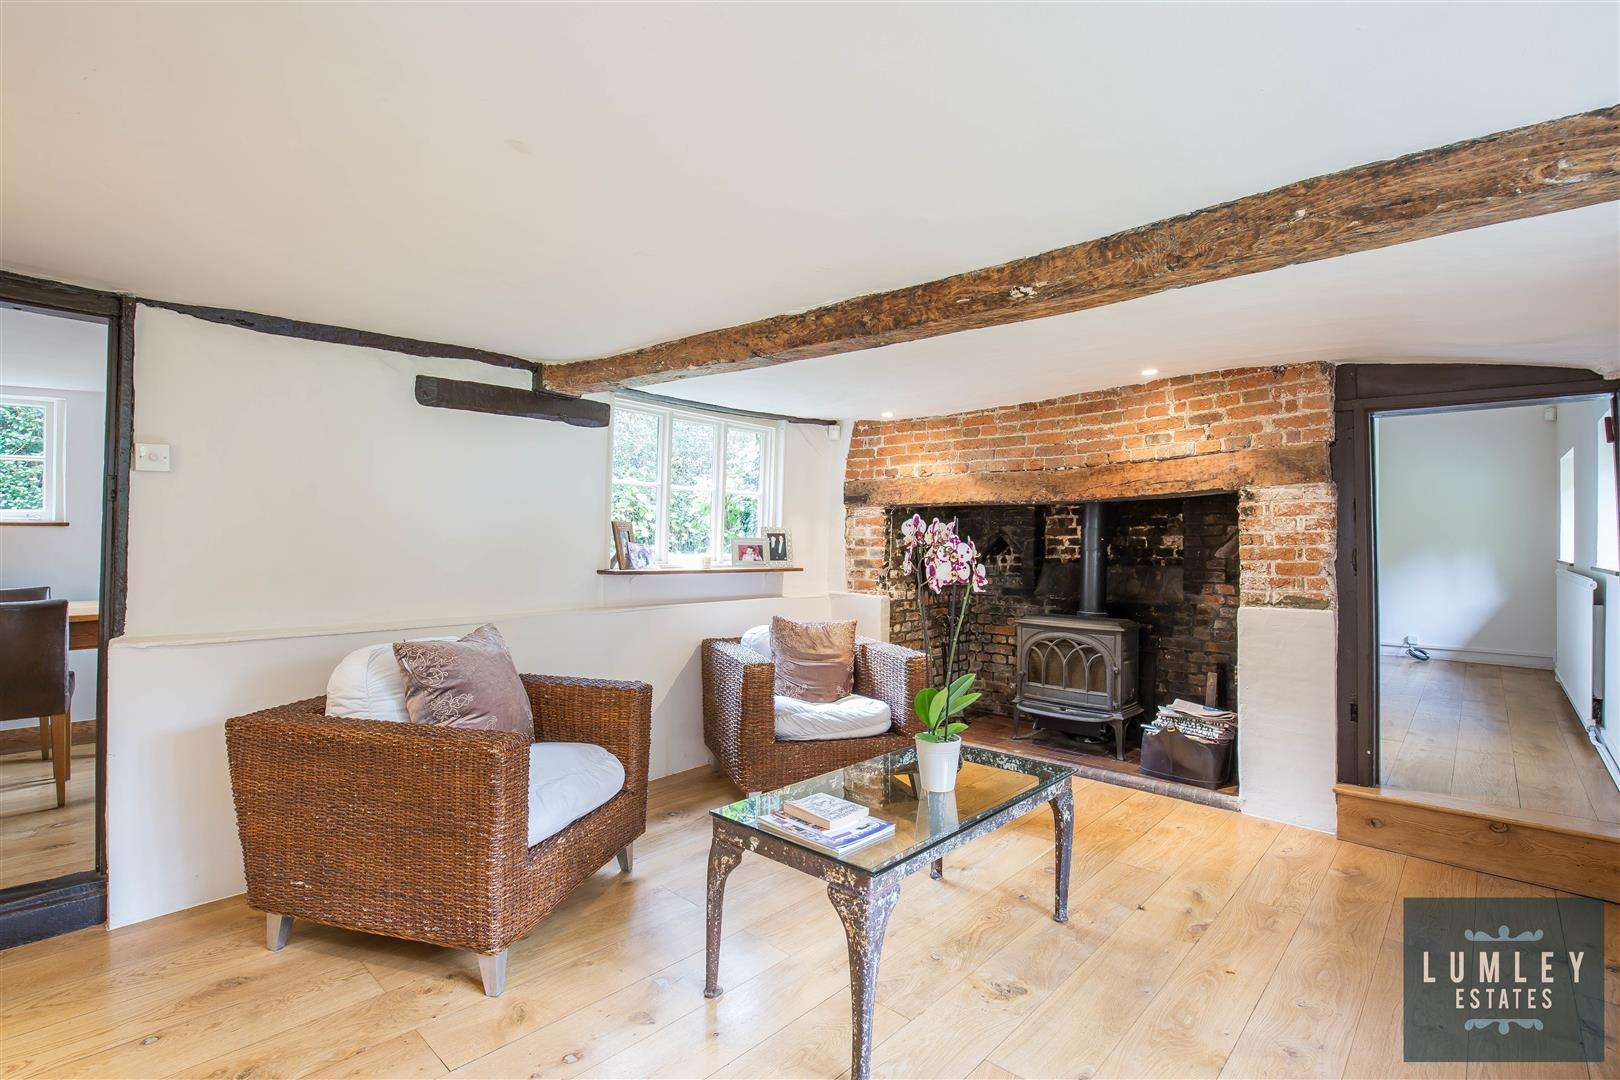 4 bed for sale in Park Street - (Property Image 1)